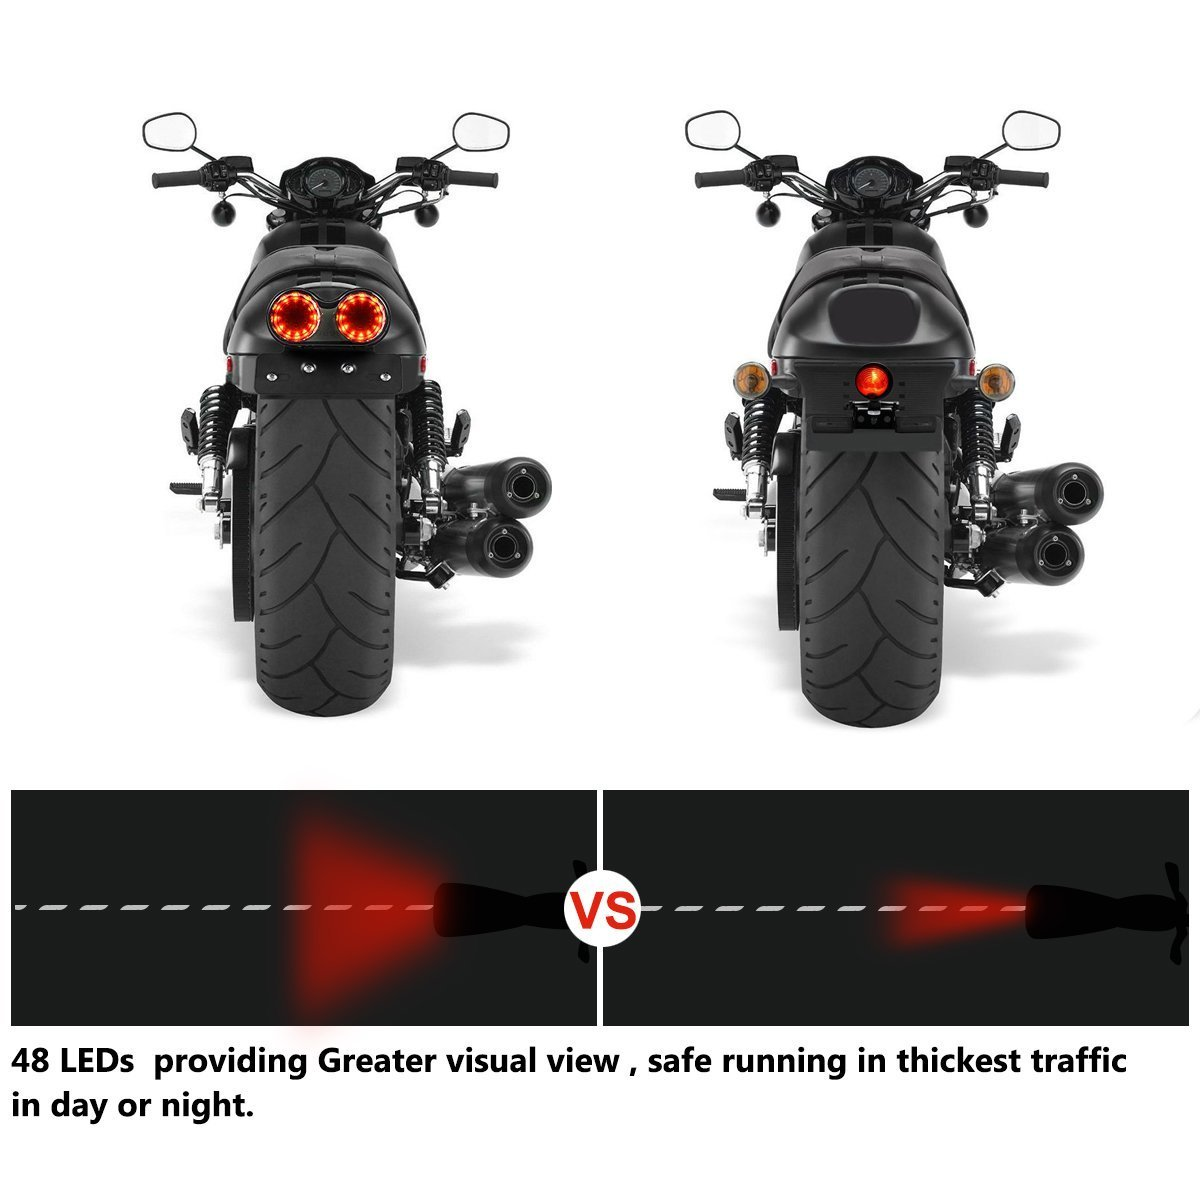 Greenclick 40w Motorcycle Tail Lights Universal Led Turn Circuit Project 40 Bicycle Light Signal And Brake With License Plate Bracket For Harley Honda Yamaha Suzuki